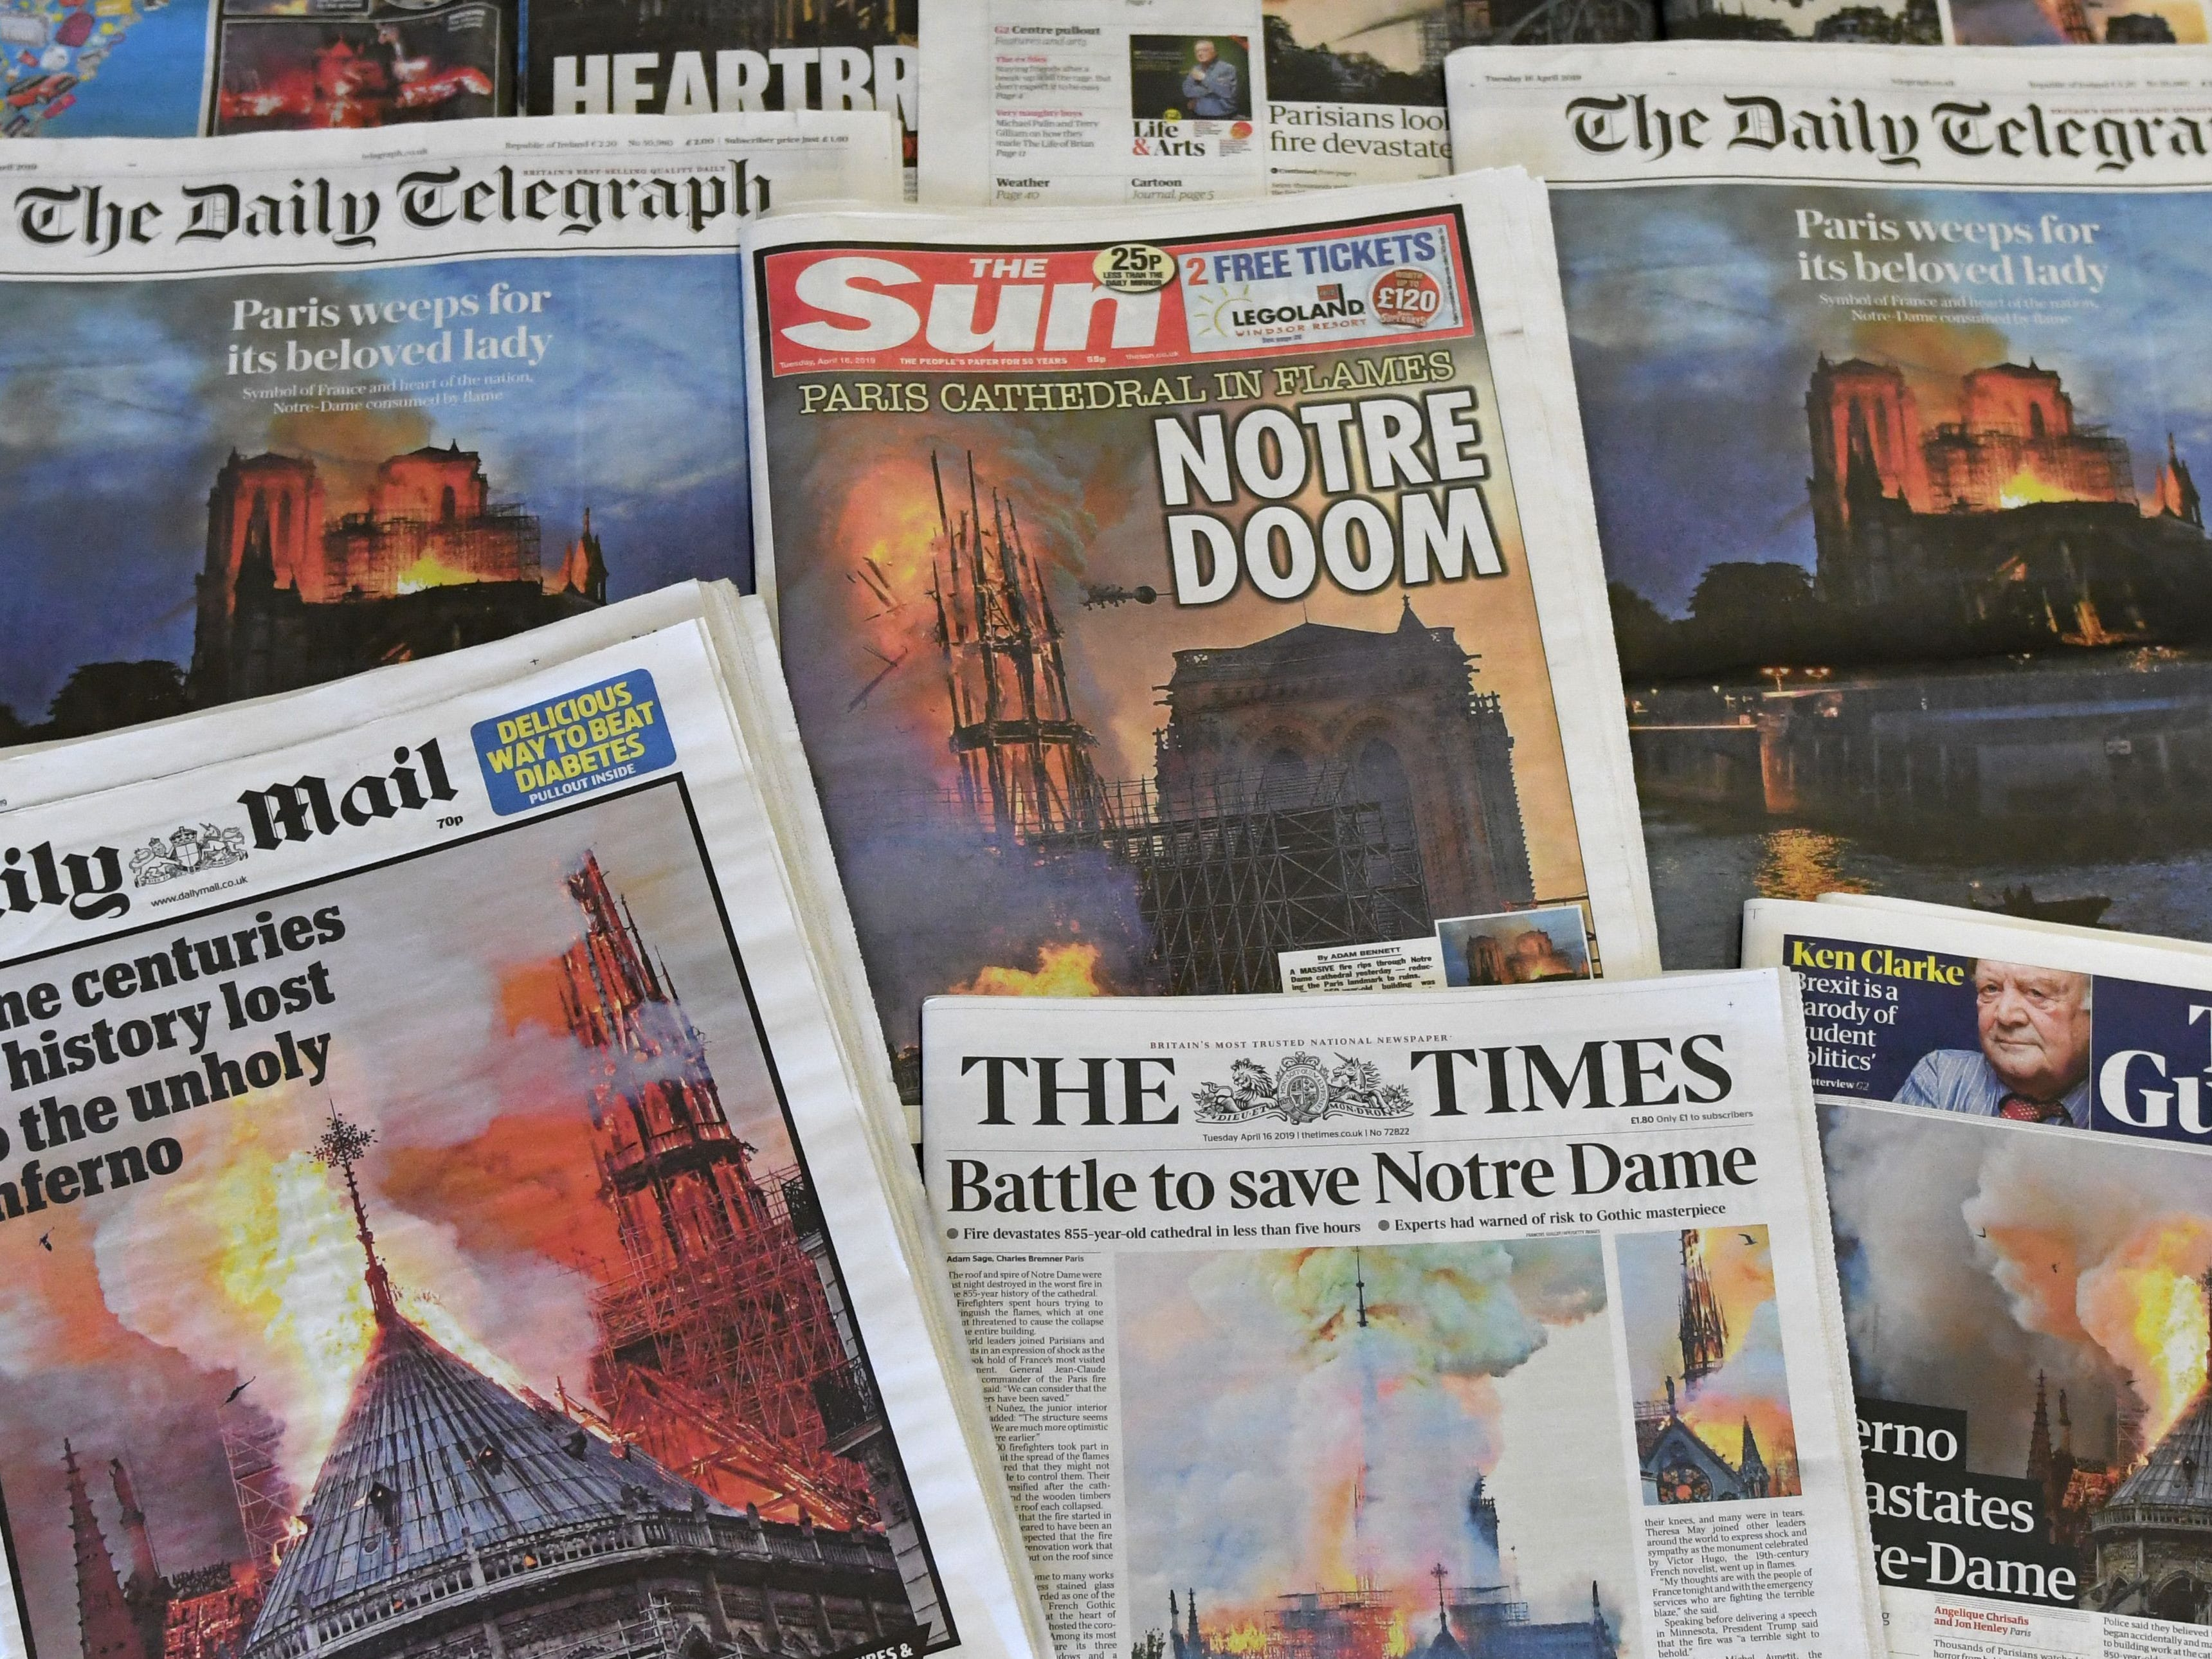 Newspaper front pages show the massive blaze that engulfed the Notre-Dame cathedral in Paris on April 16, 2019.